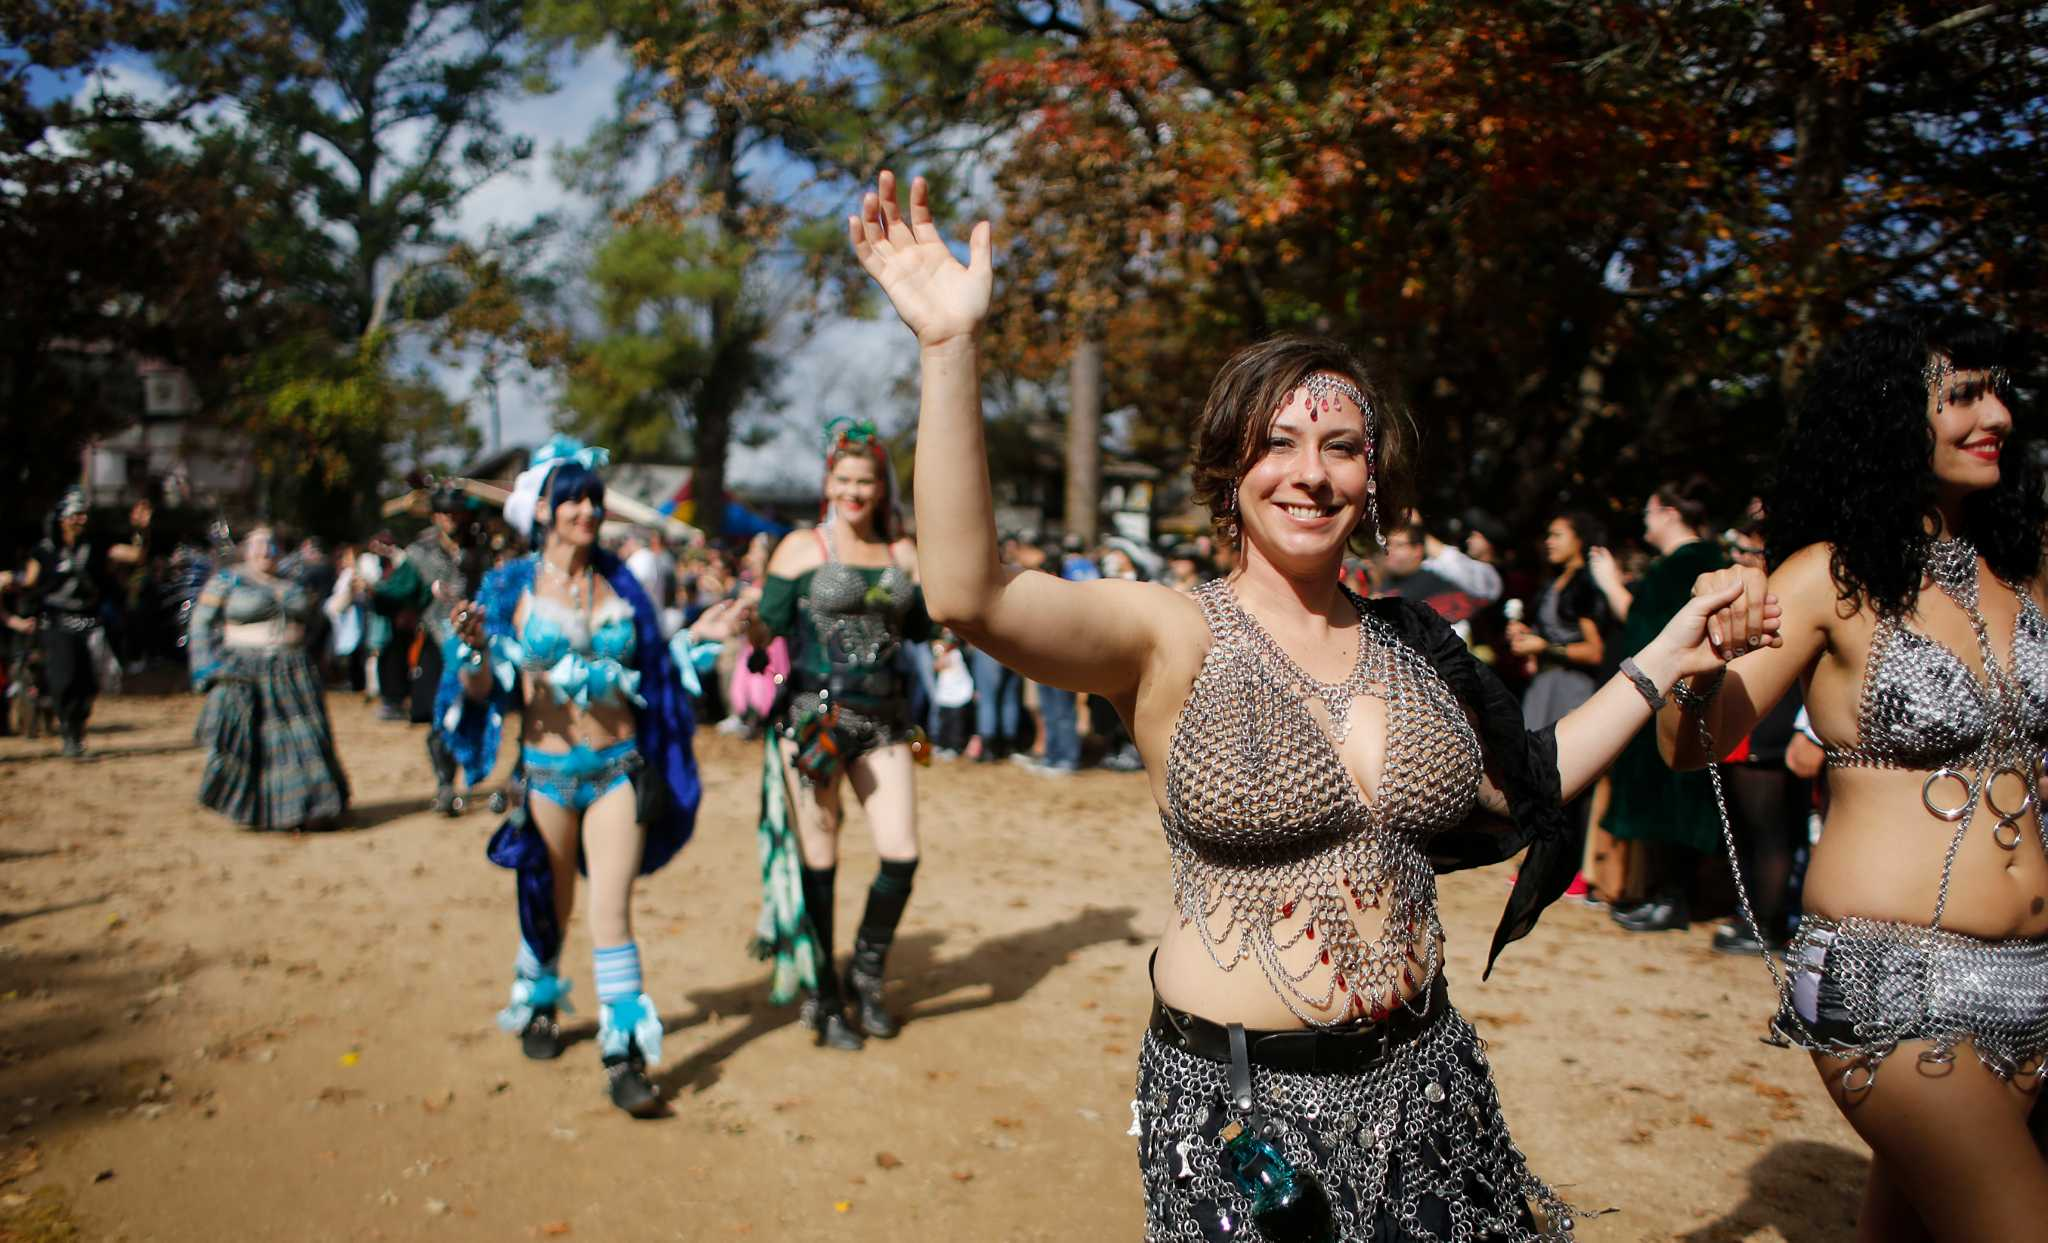 Renaissance Fairs: Texas Renaissance Festival Announces A Few New Additions